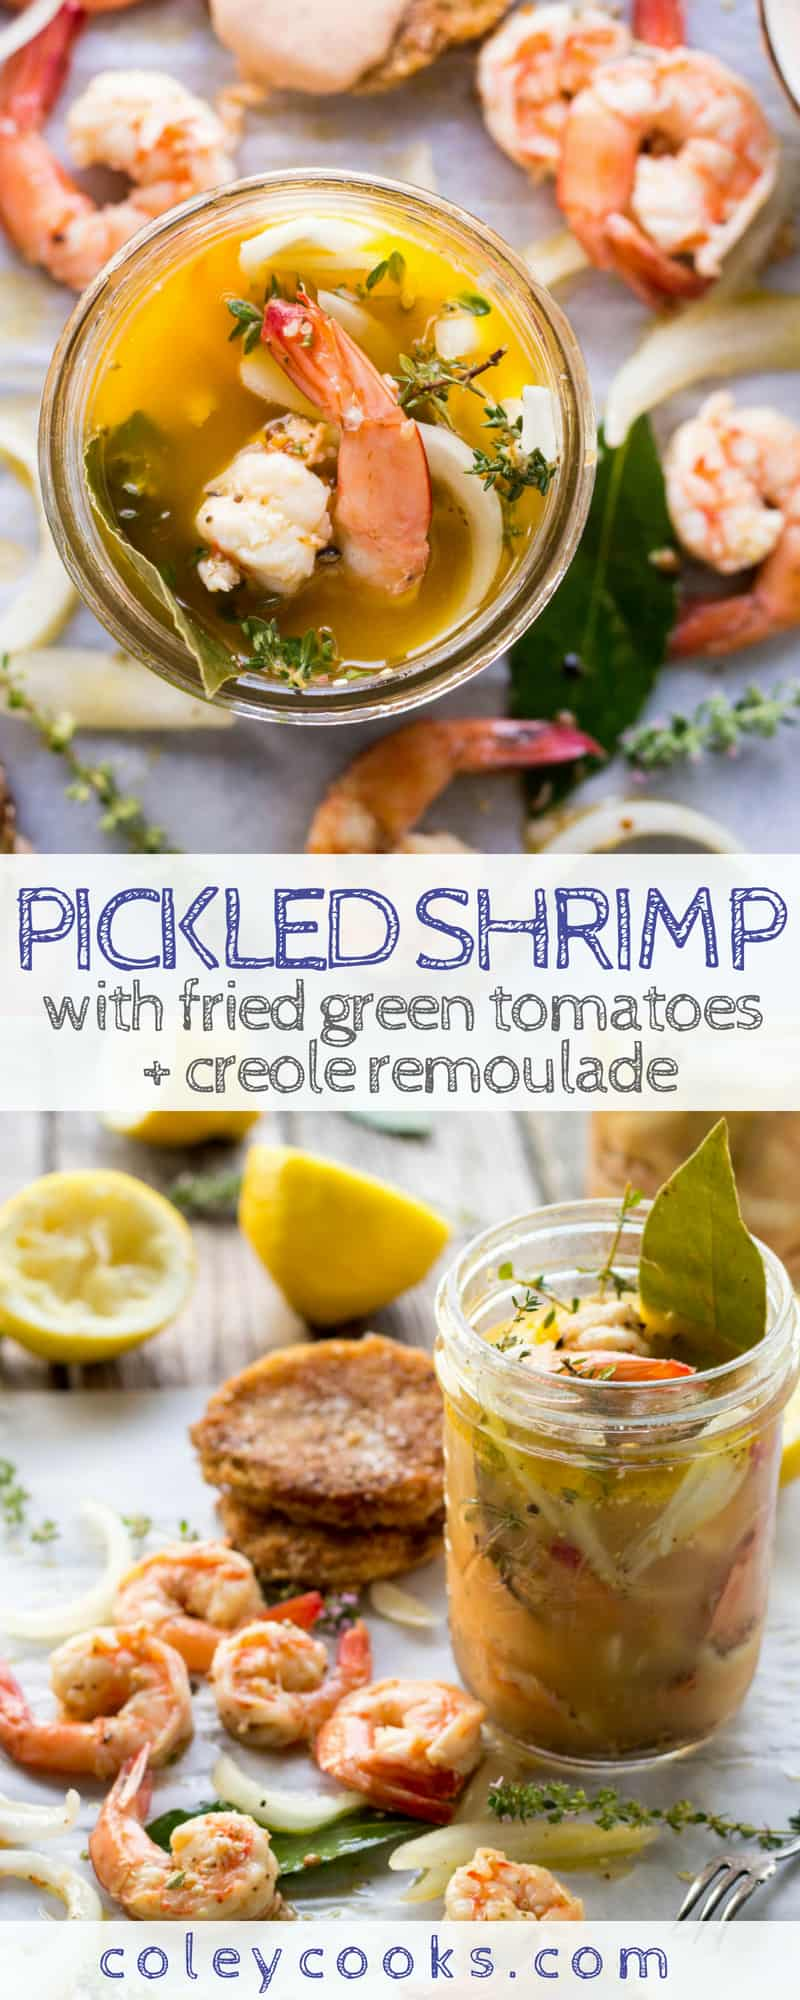 PICKLED SHRIMP with FRIED GREEN TOMATOES + CREOLE REMOULADE | Easy shrimp appetizer recipe! Tangy quick pickled shrimp with classic fried green tomatoes and creamy remoulade. #appetizer #recipe #shrimp #pickled #southern #summer #creole | ColeyCooks.com